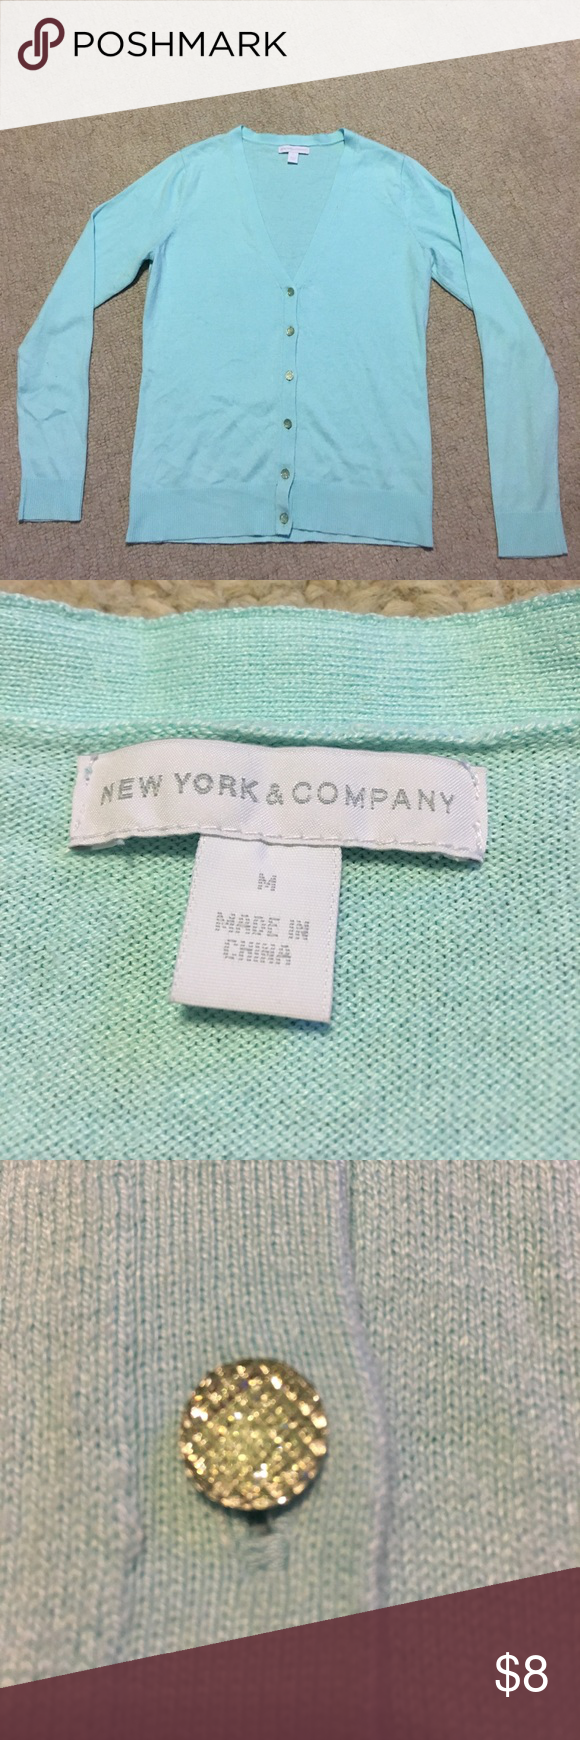 New York & Company button-down cardigan Light blue (Robins egg) New York & Company button-down cardigan. Size M and in great condition. New York & Company Sweaters Cardigans